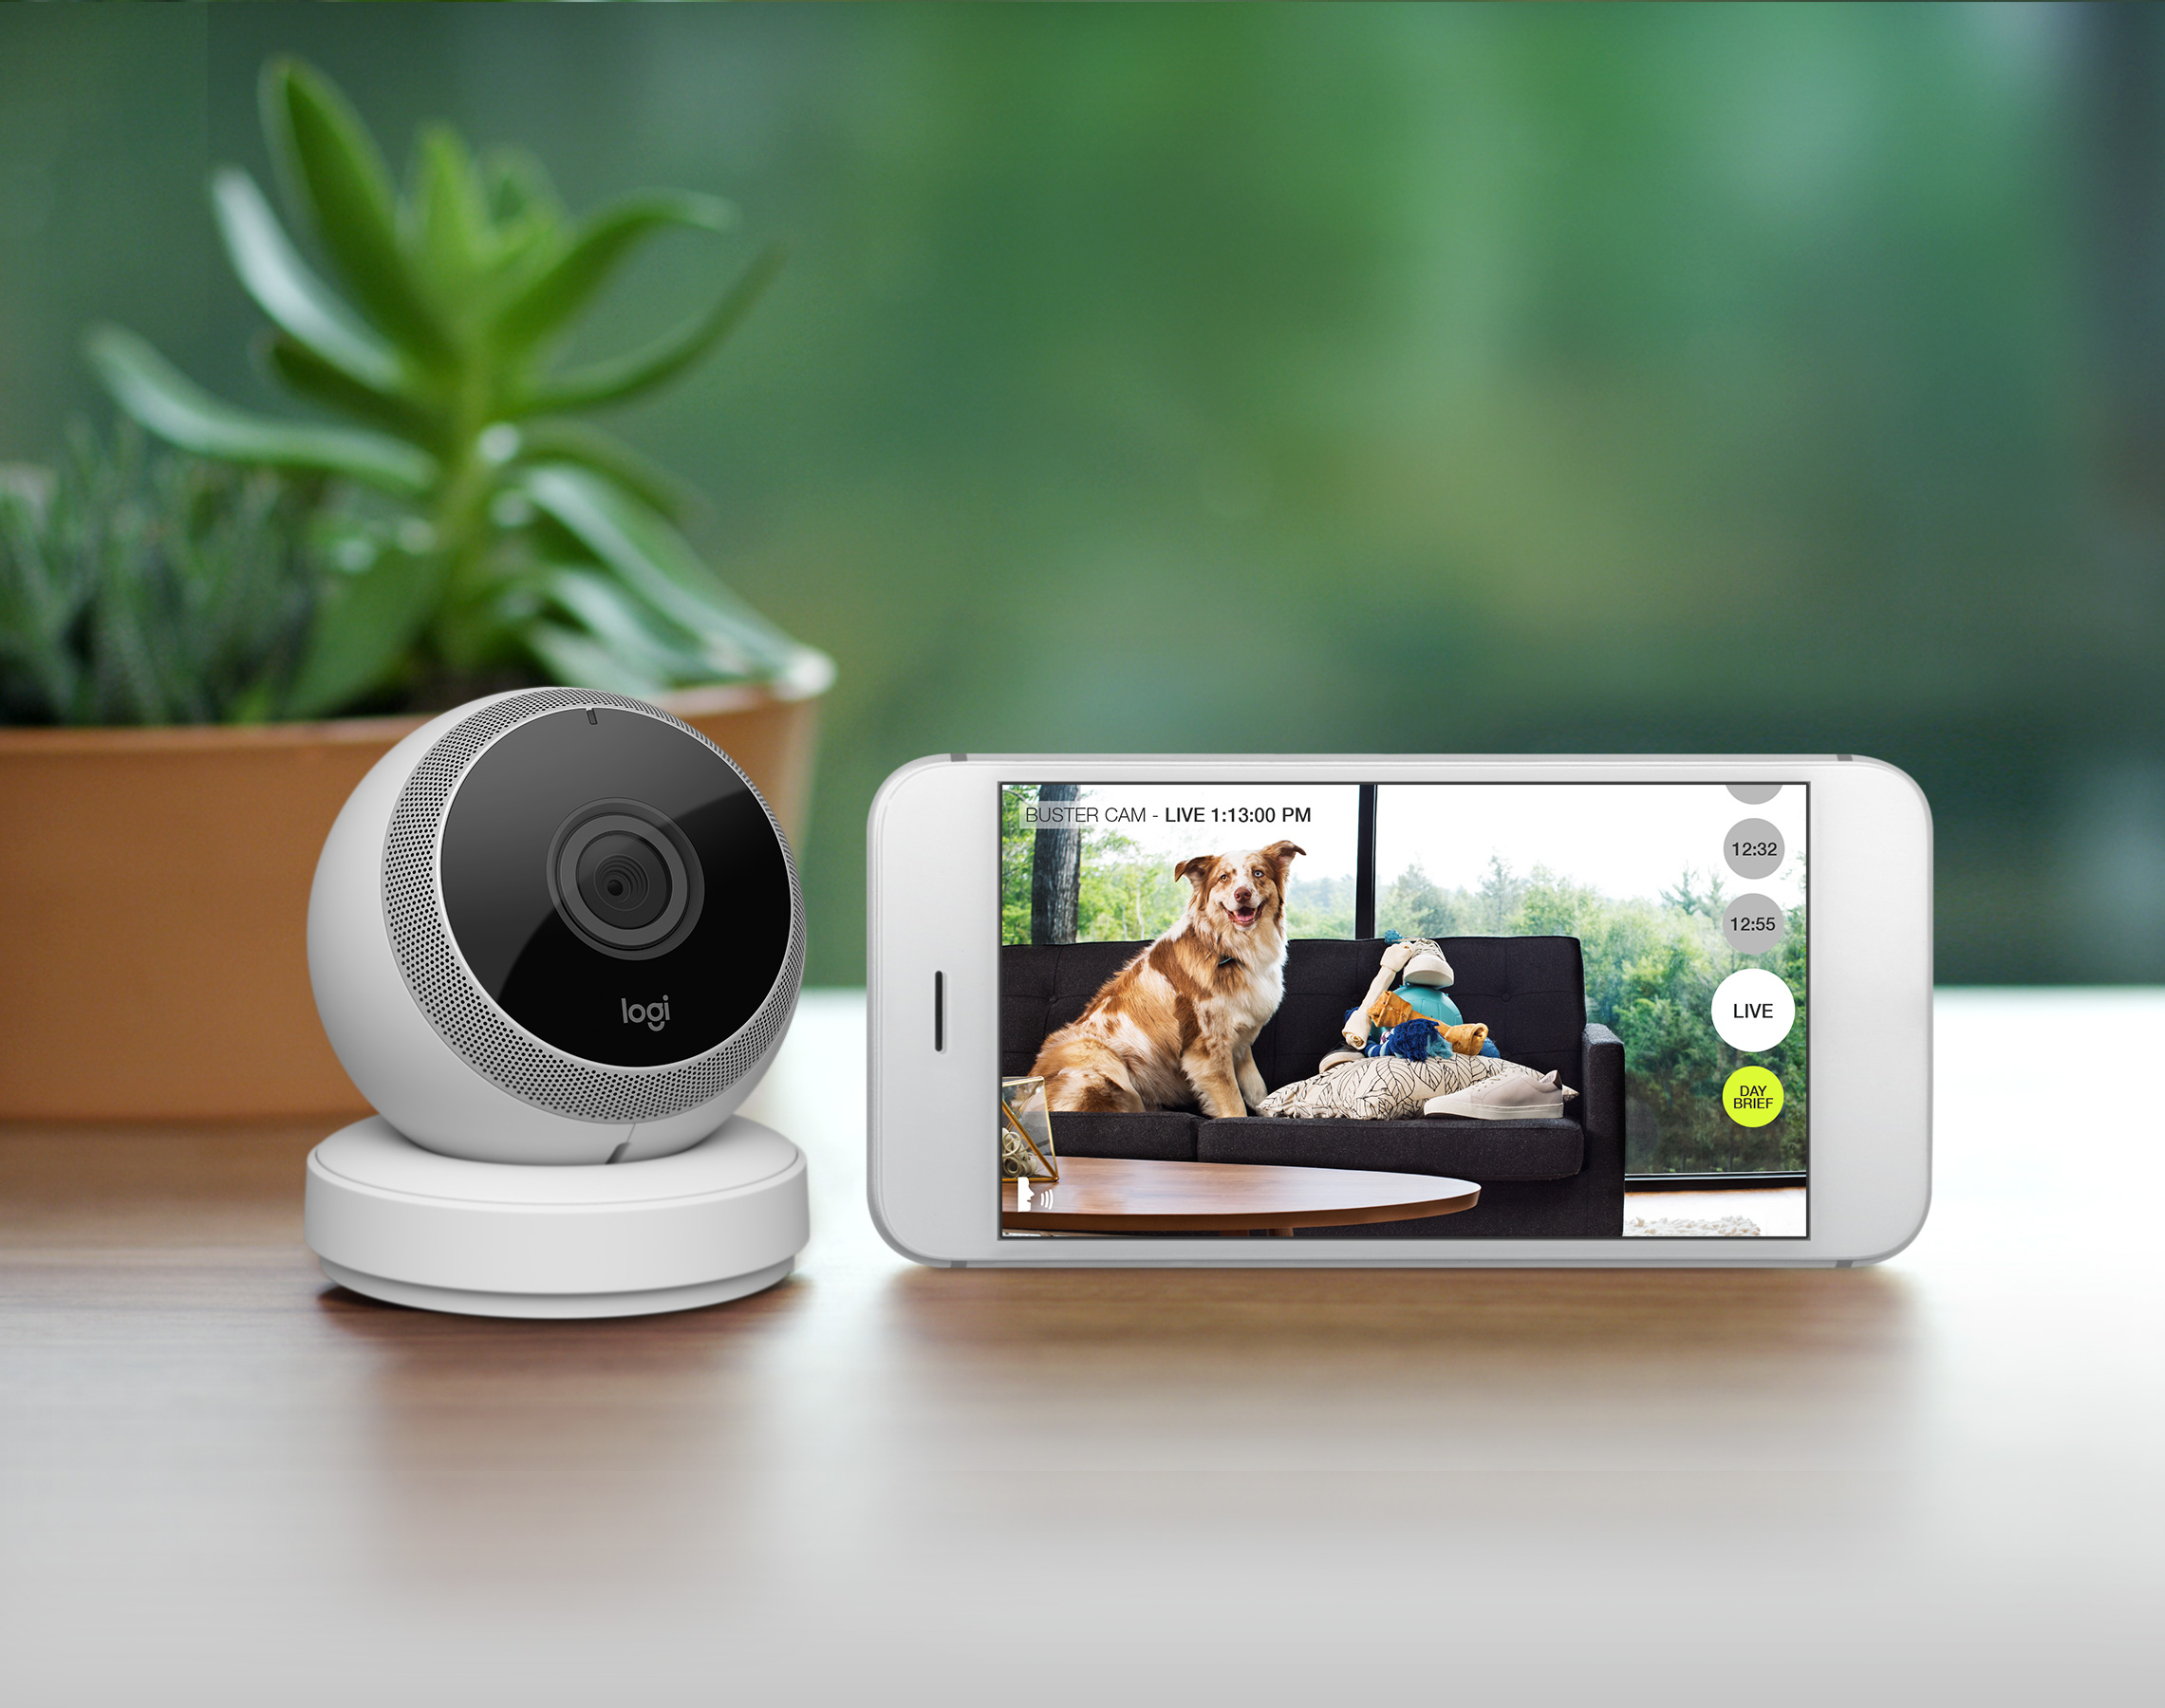 Logitech CircleYou're home.Away from home. - Logitech's first product under its new brand, Circle expanded the company beyond mice and keyboards into smart home products. Sideways helped to position Circle as the home camera that connects you to family, setting it apart from a crowded home security marketplace.  Creative Direction, advertising, photo & Video